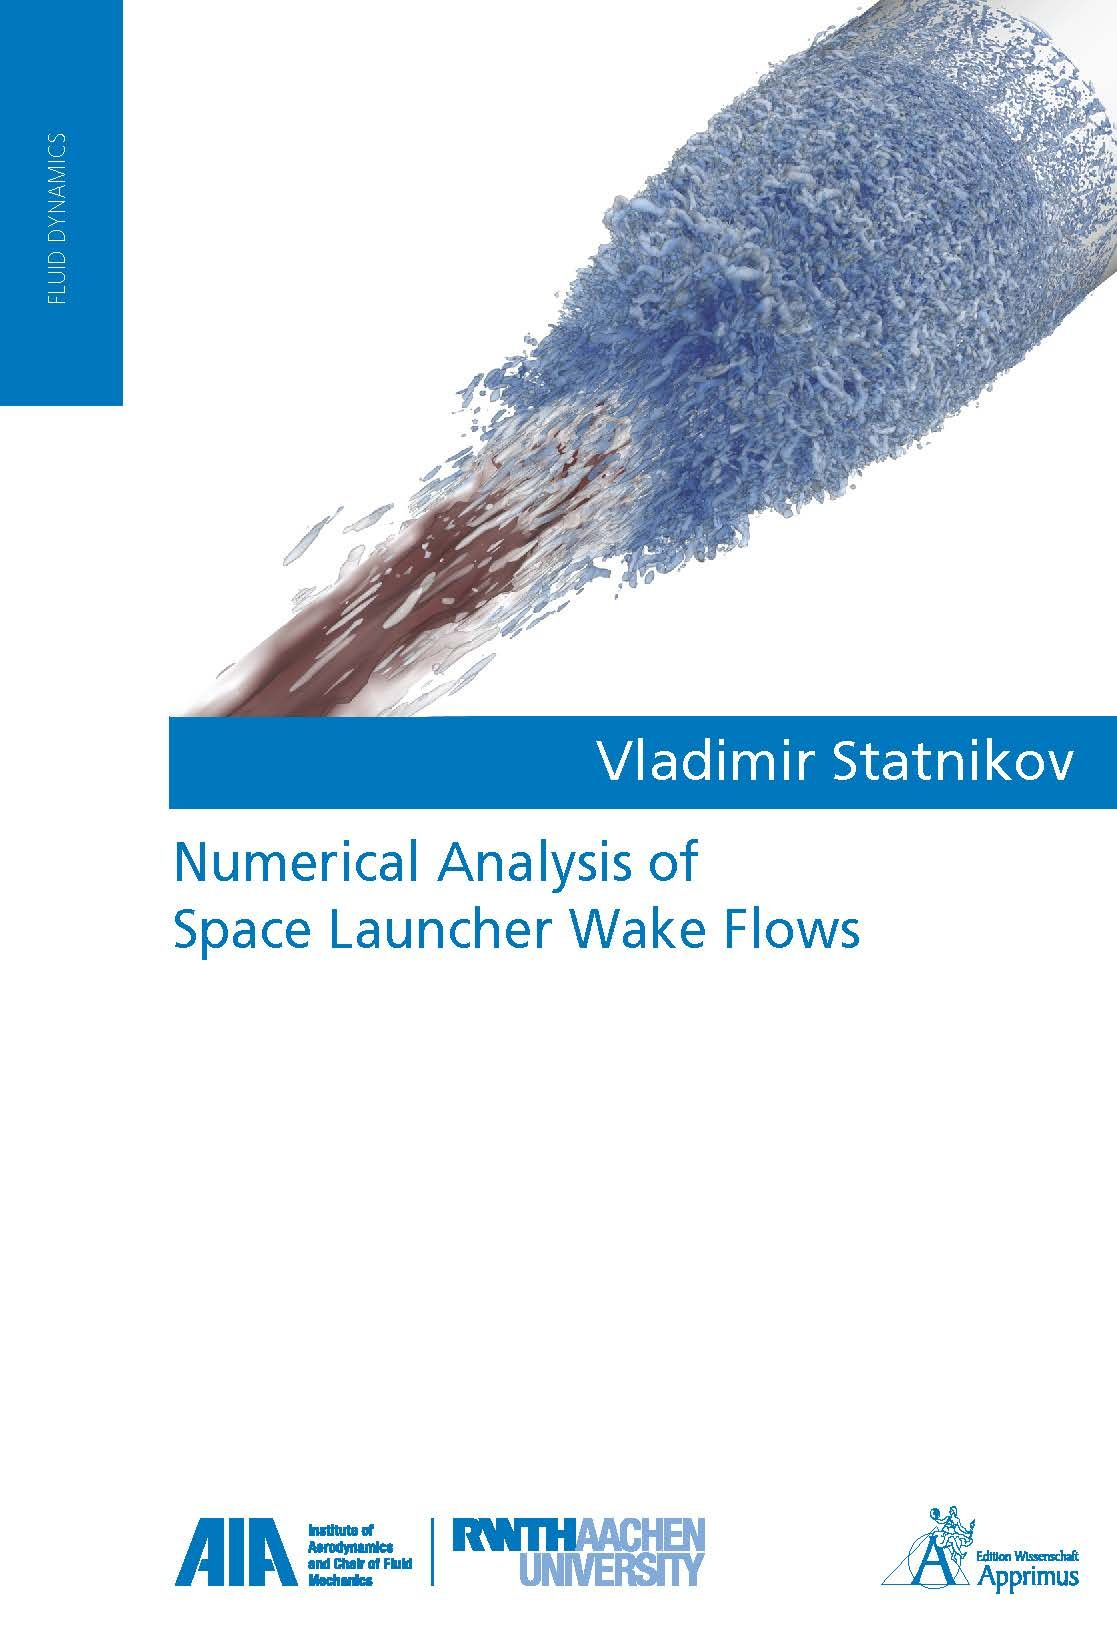 Numerical Analysis of Space Launcher Wake Flows